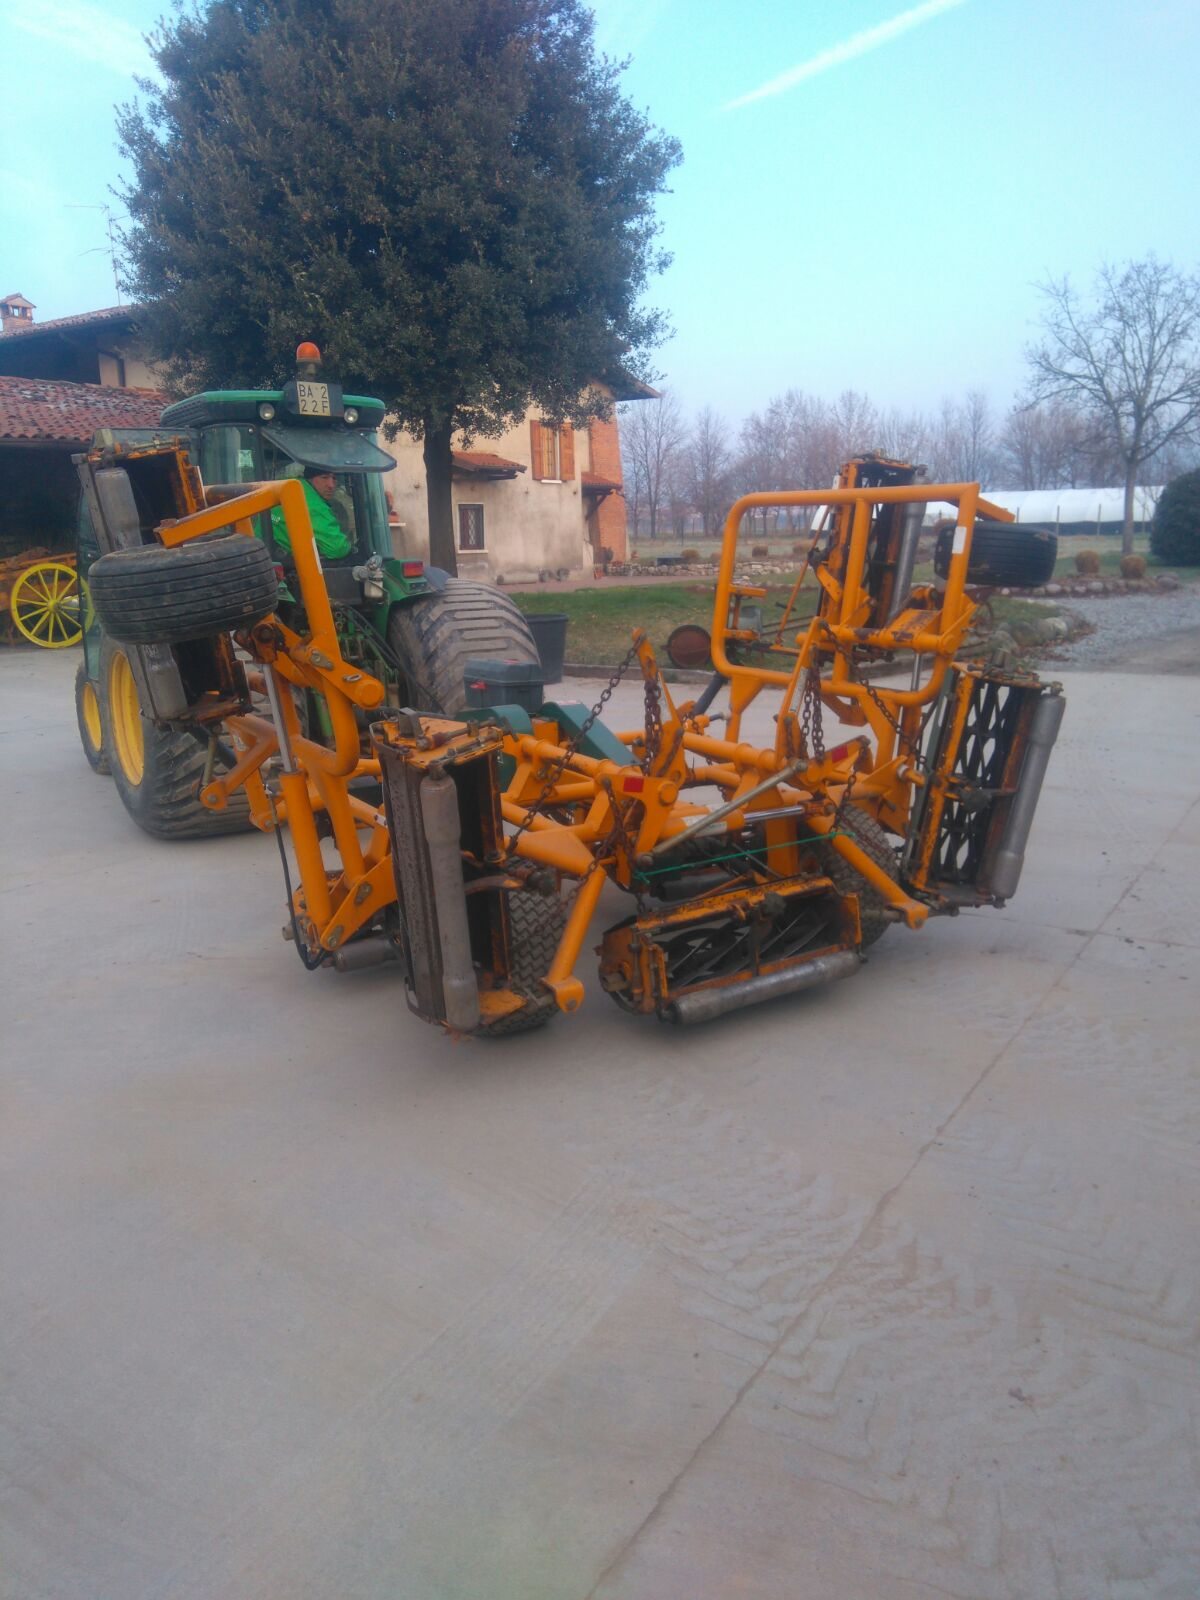 REEL MOWERS 7 MOWERS KESMAC for sale